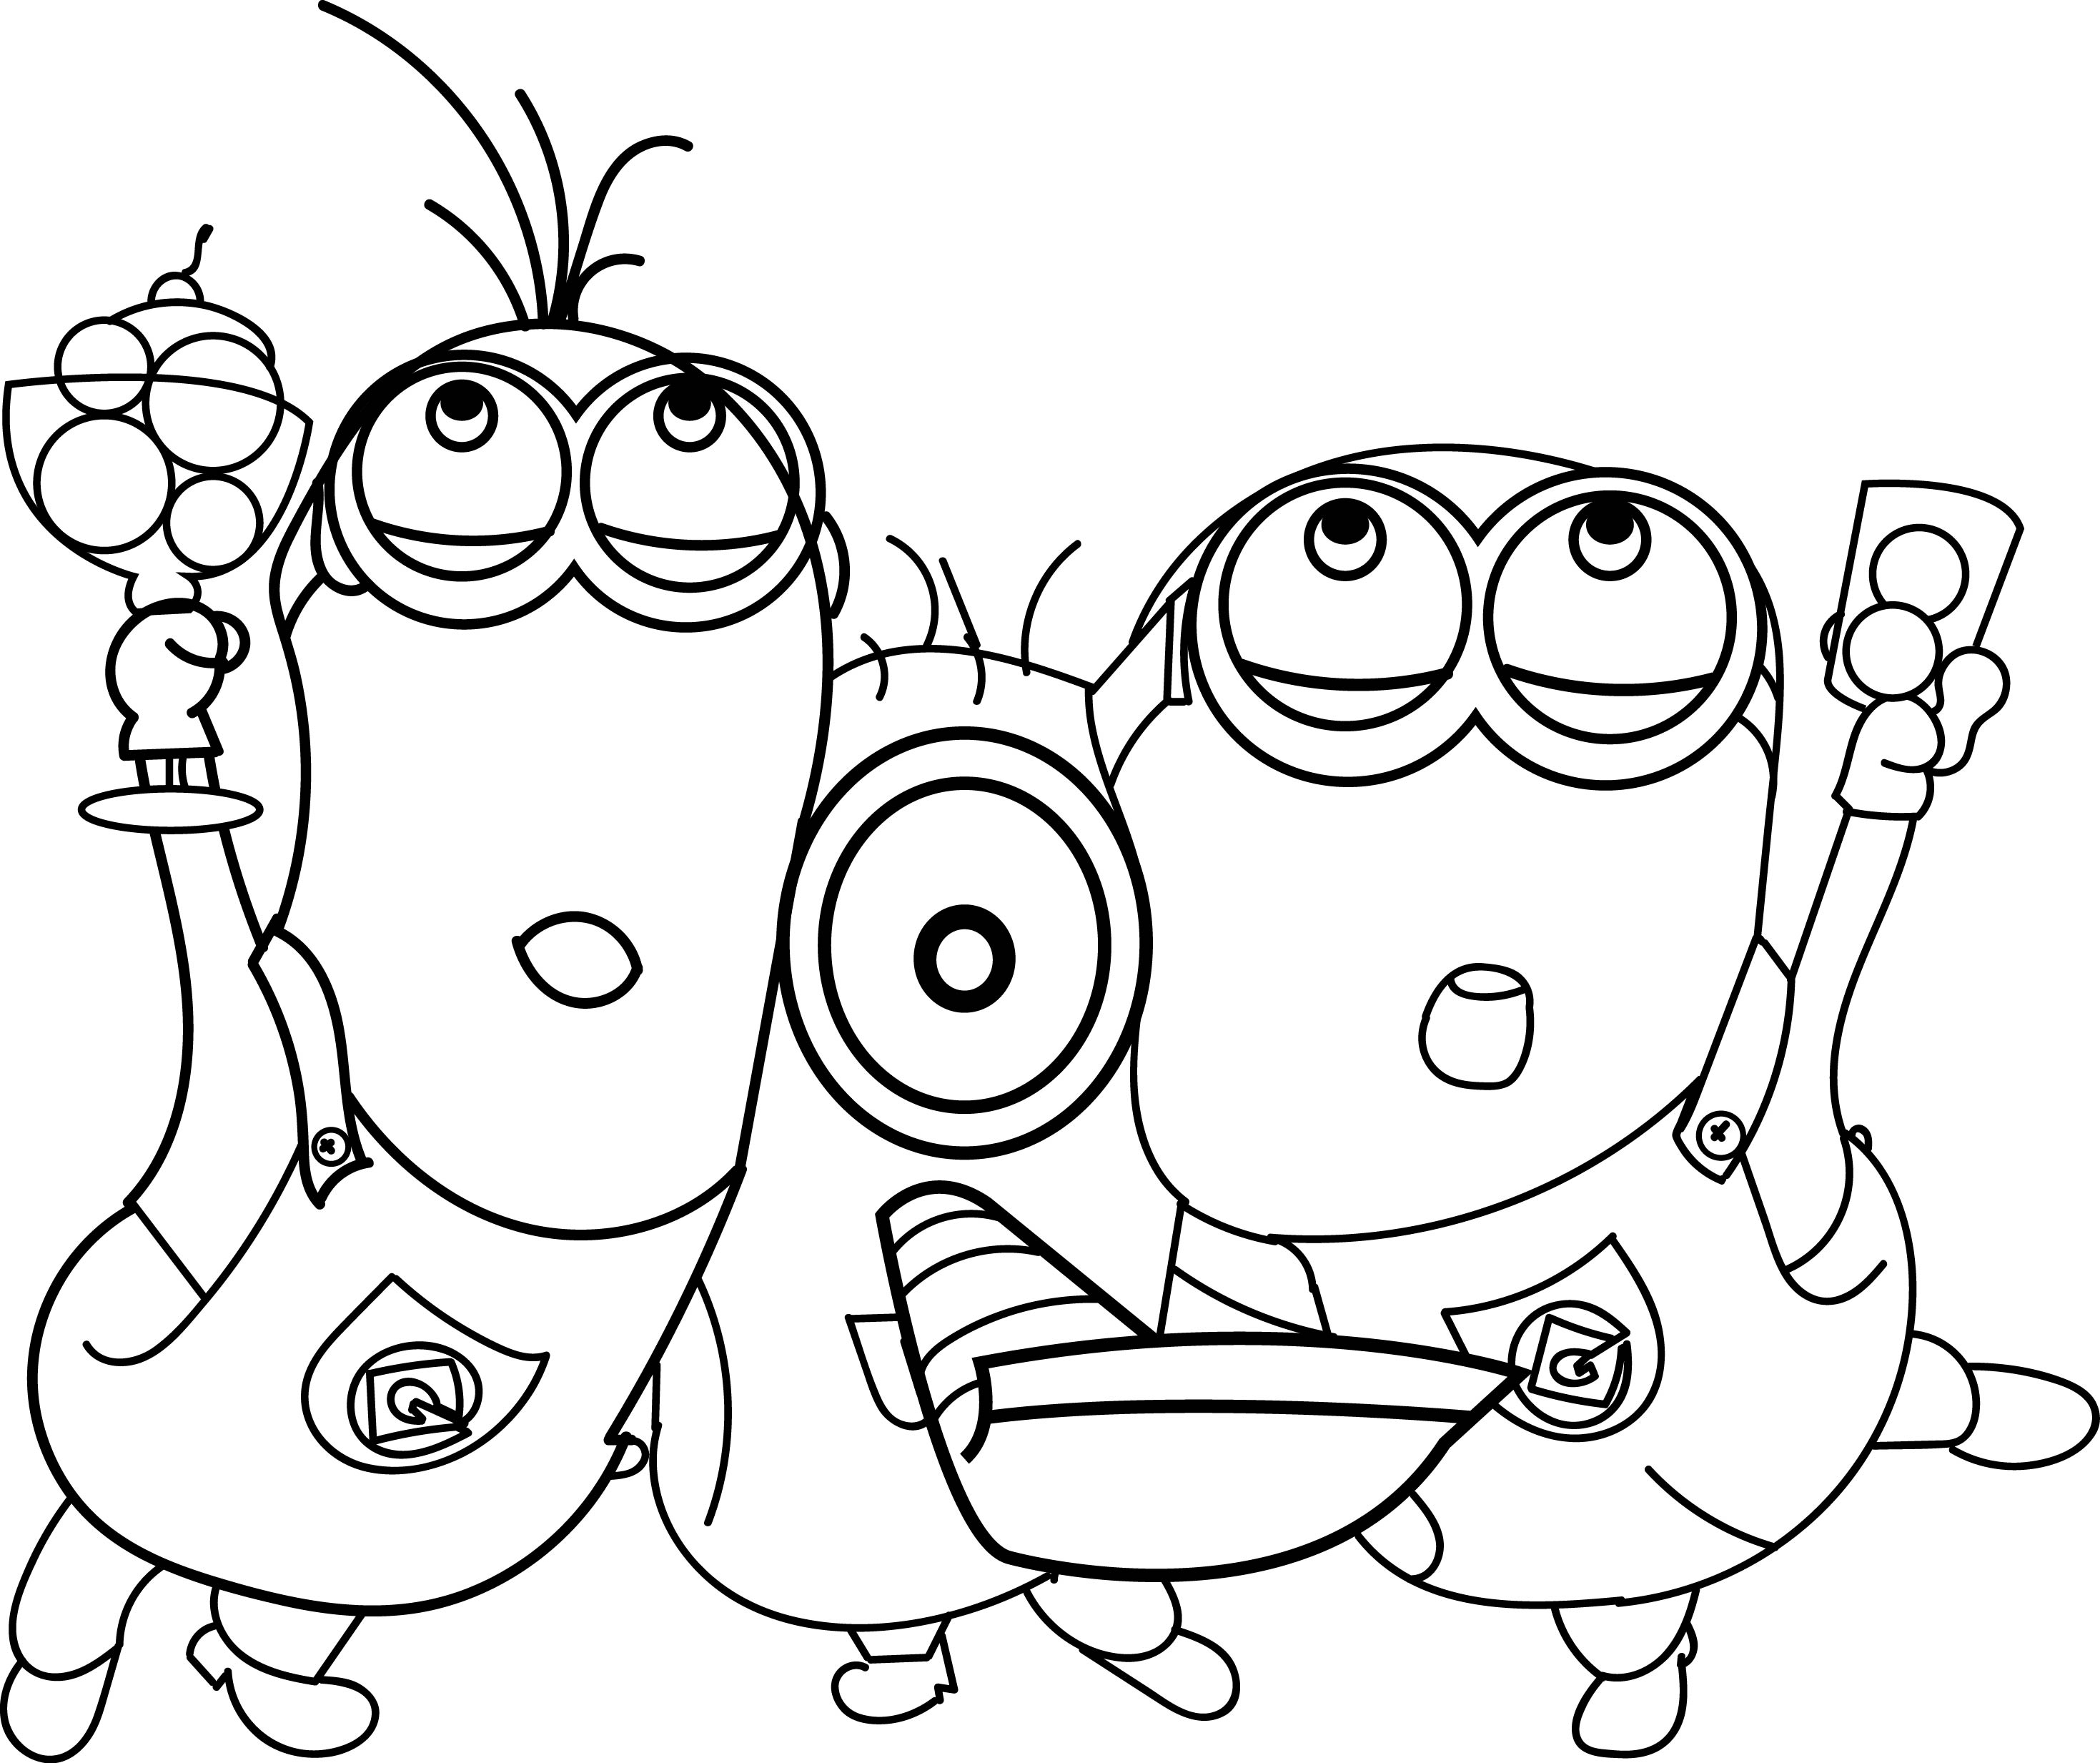 97 Minion Coloring Pages Soccer Player Wecoloringpage Free